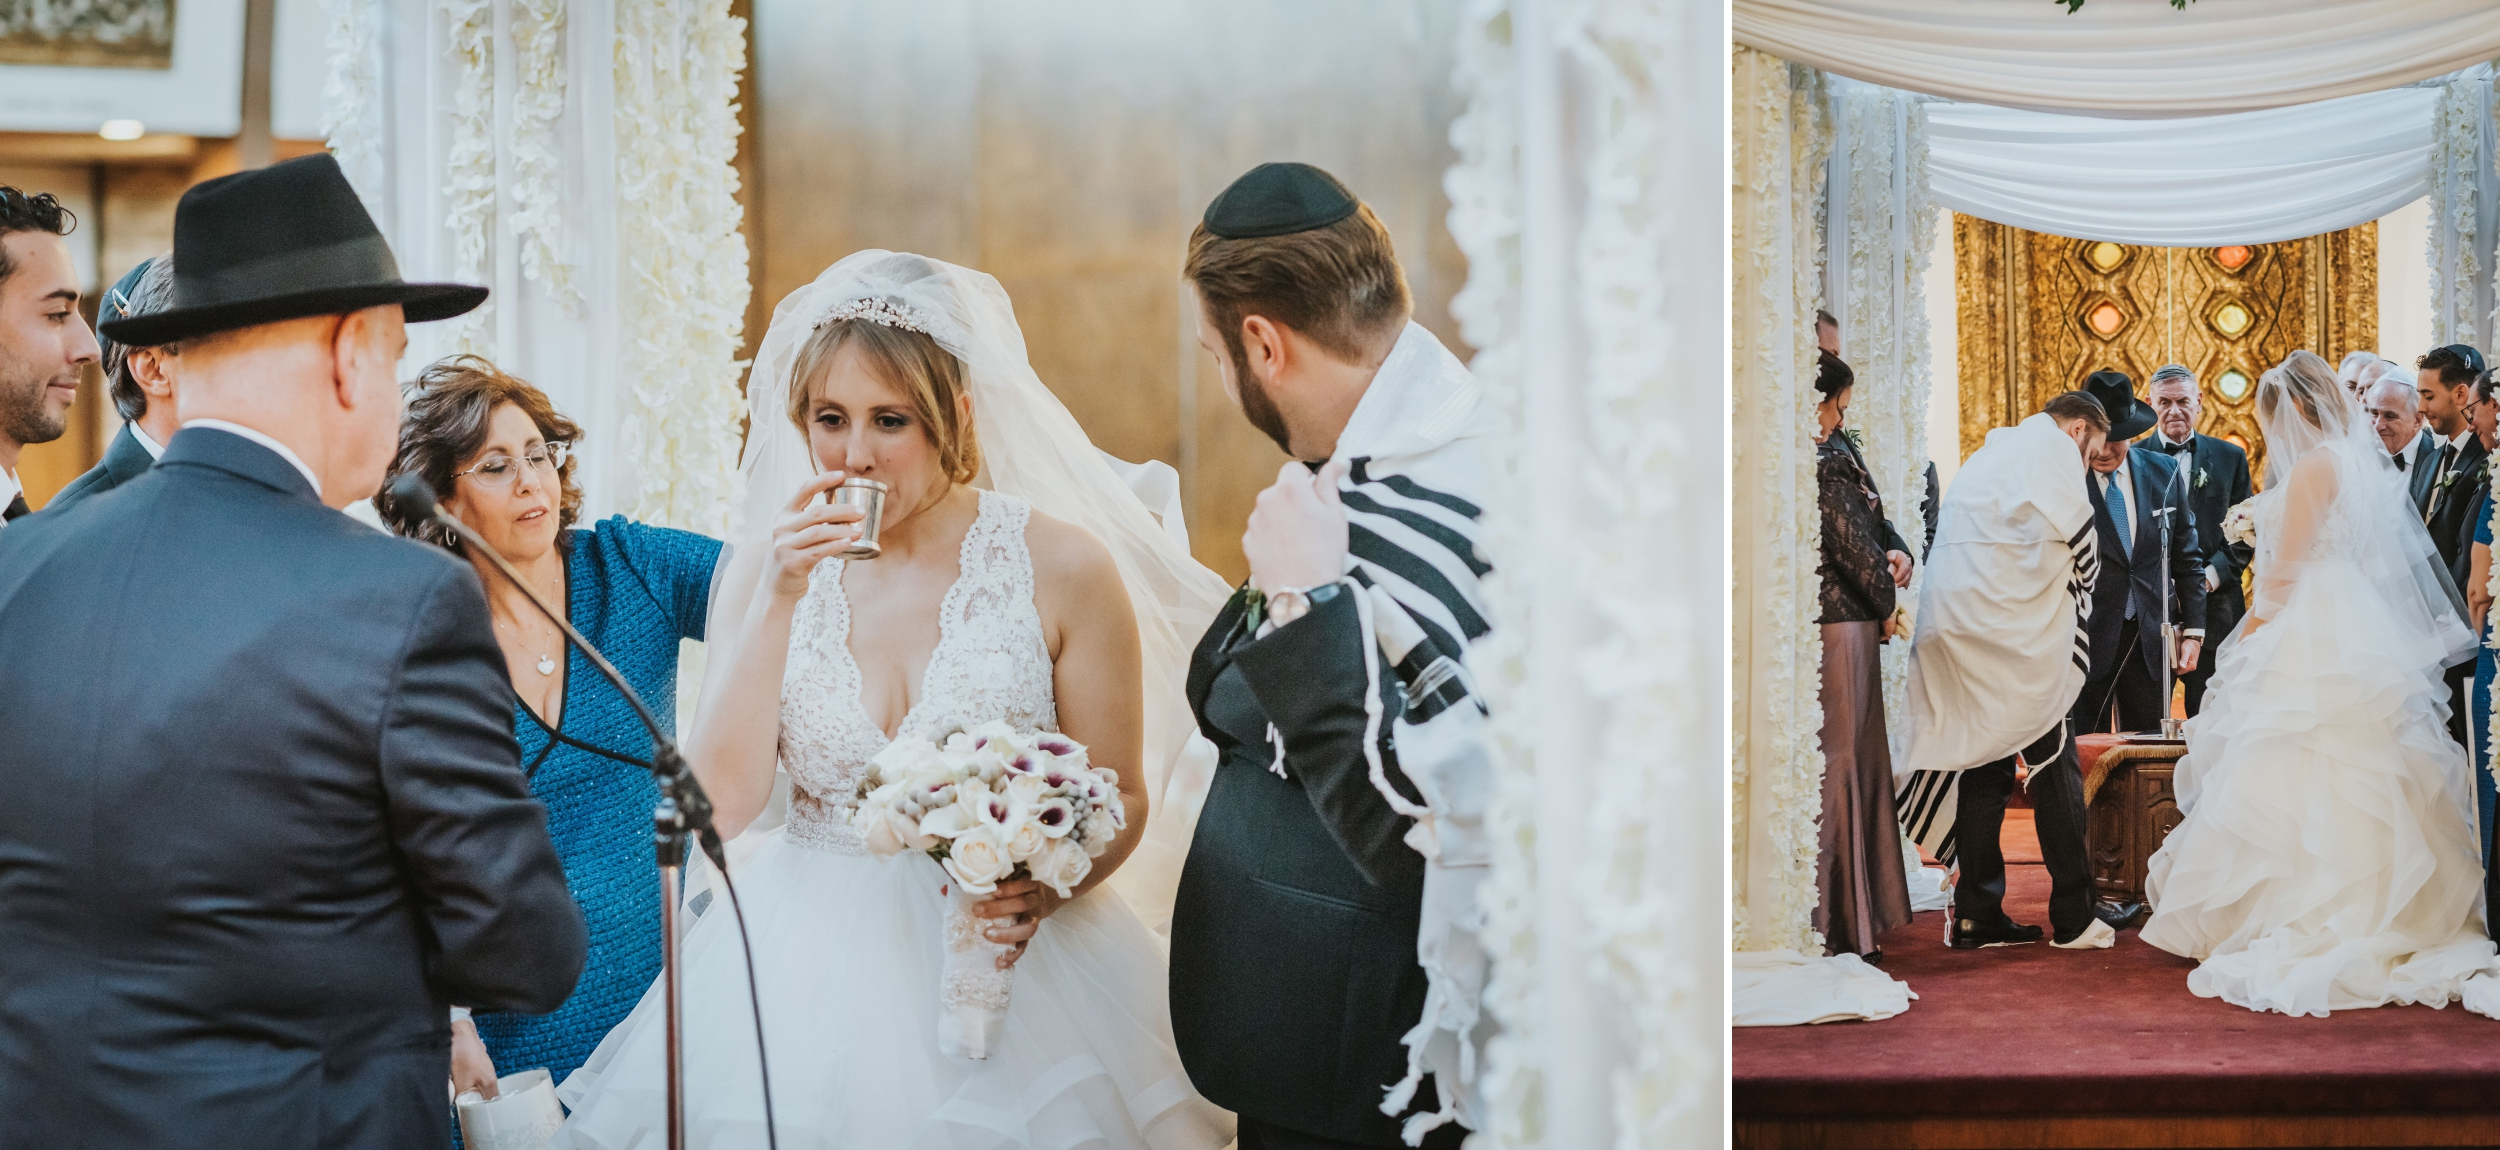 Ilyse and Max - The Sephardic Temple of Cedarhurst Wedding Long Island NYC 079.jpg